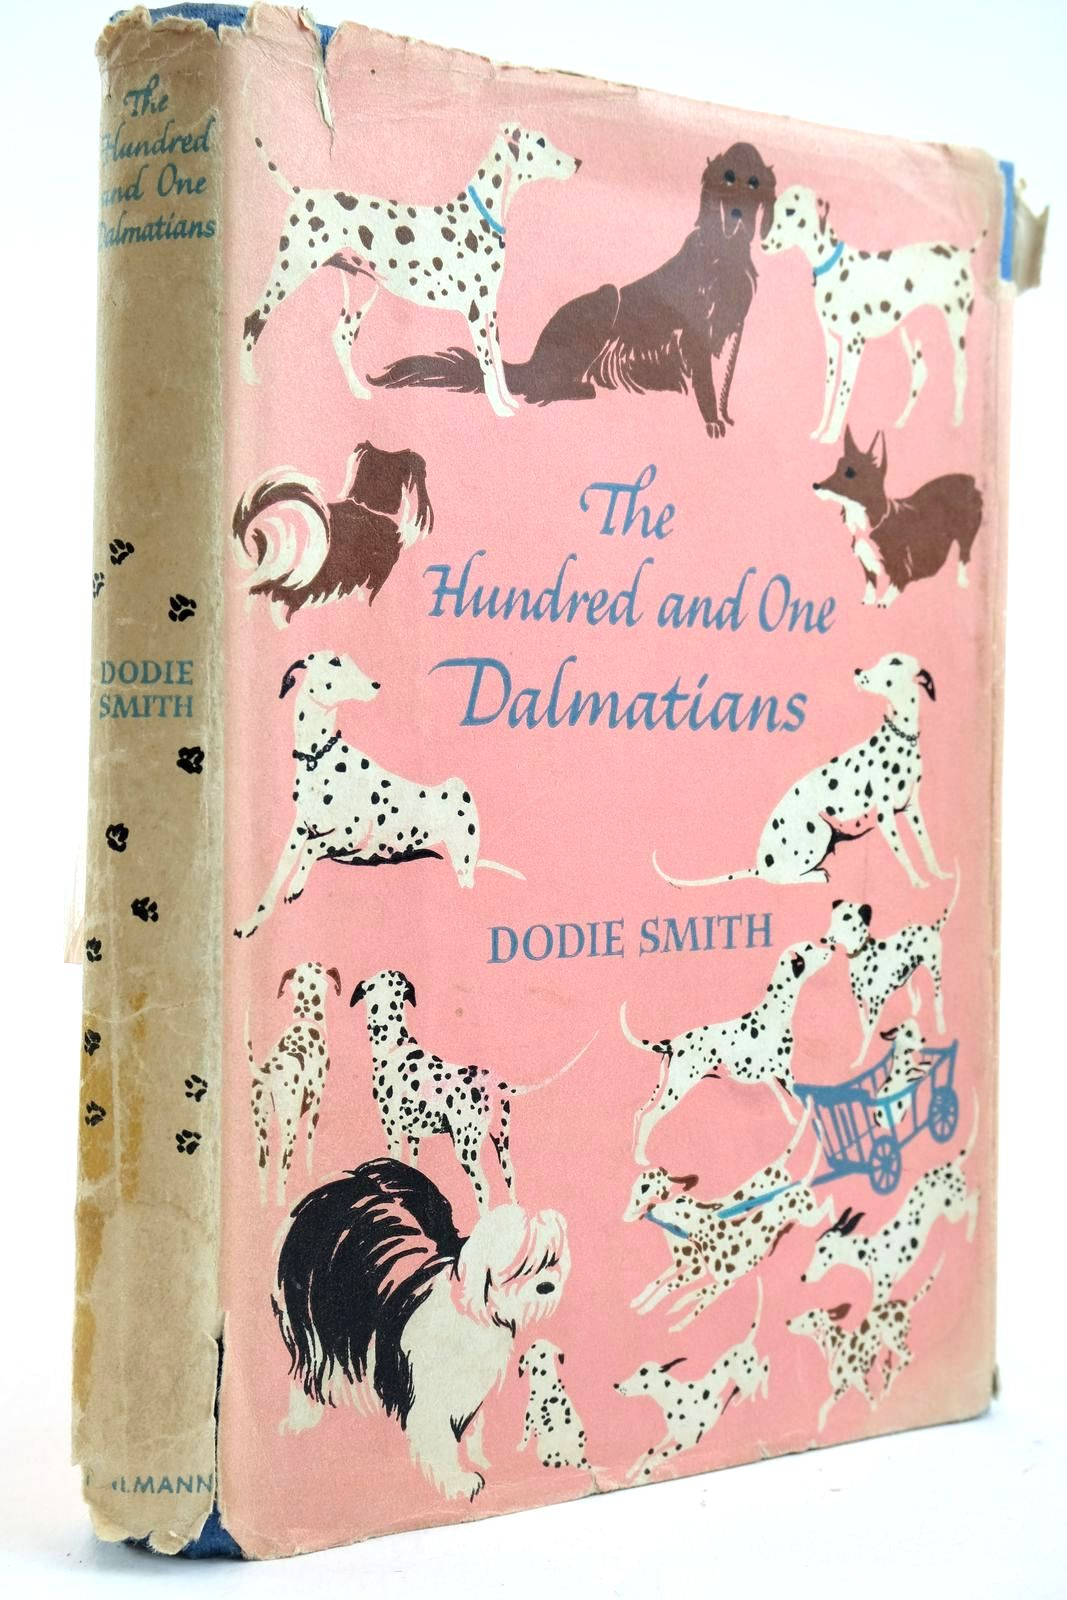 Photo of THE HUNDRED AND ONE DALMATIANS written by Smith, Dodie illustrated by Johnstone, Janet Grahame Johnstone, Anne Grahame published by Heinemann (STOCK CODE: 2132967)  for sale by Stella & Rose's Books